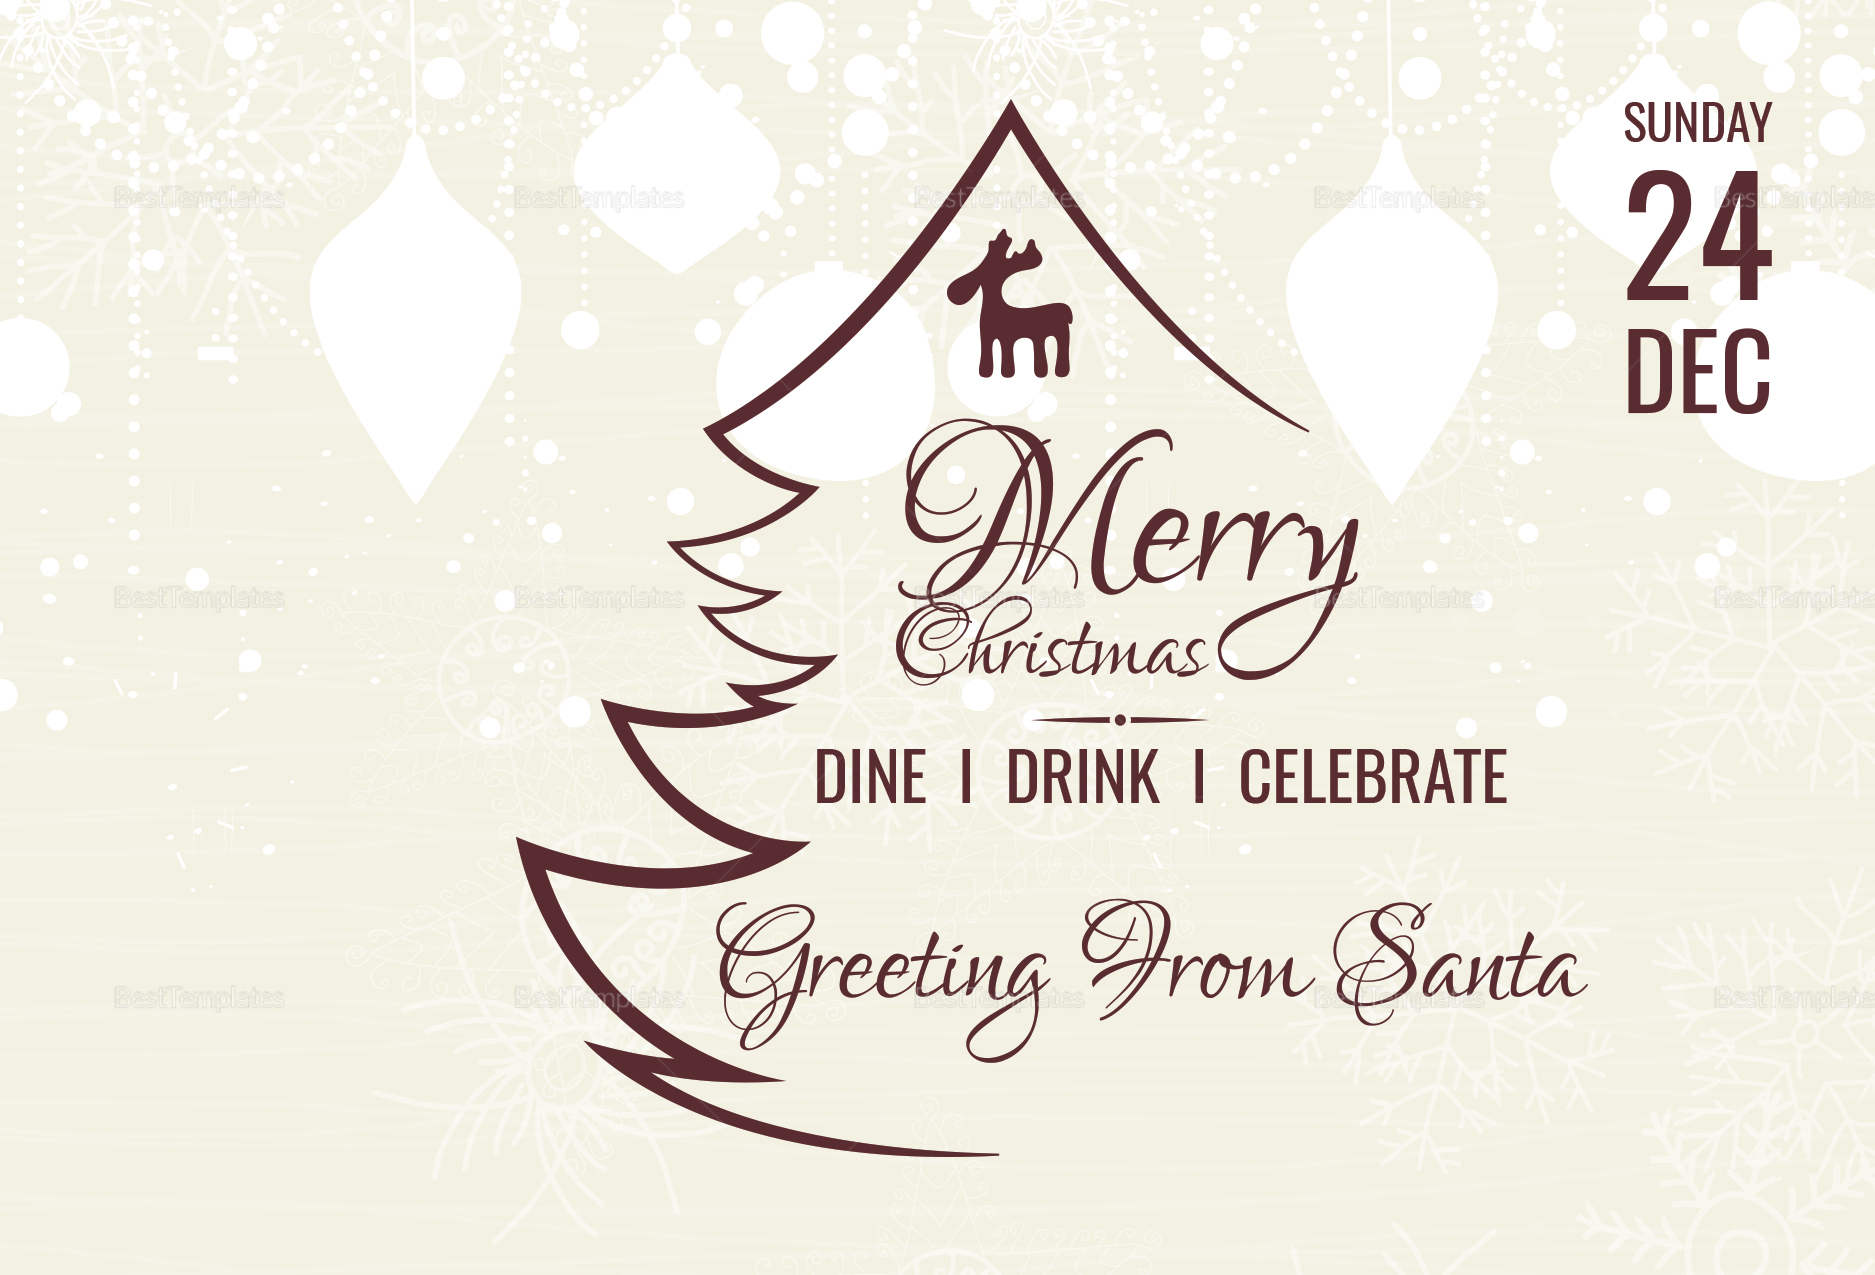 Elegant Christmas Templates: Elegant Christmas Greeting Card Template In Adobe Photoshop